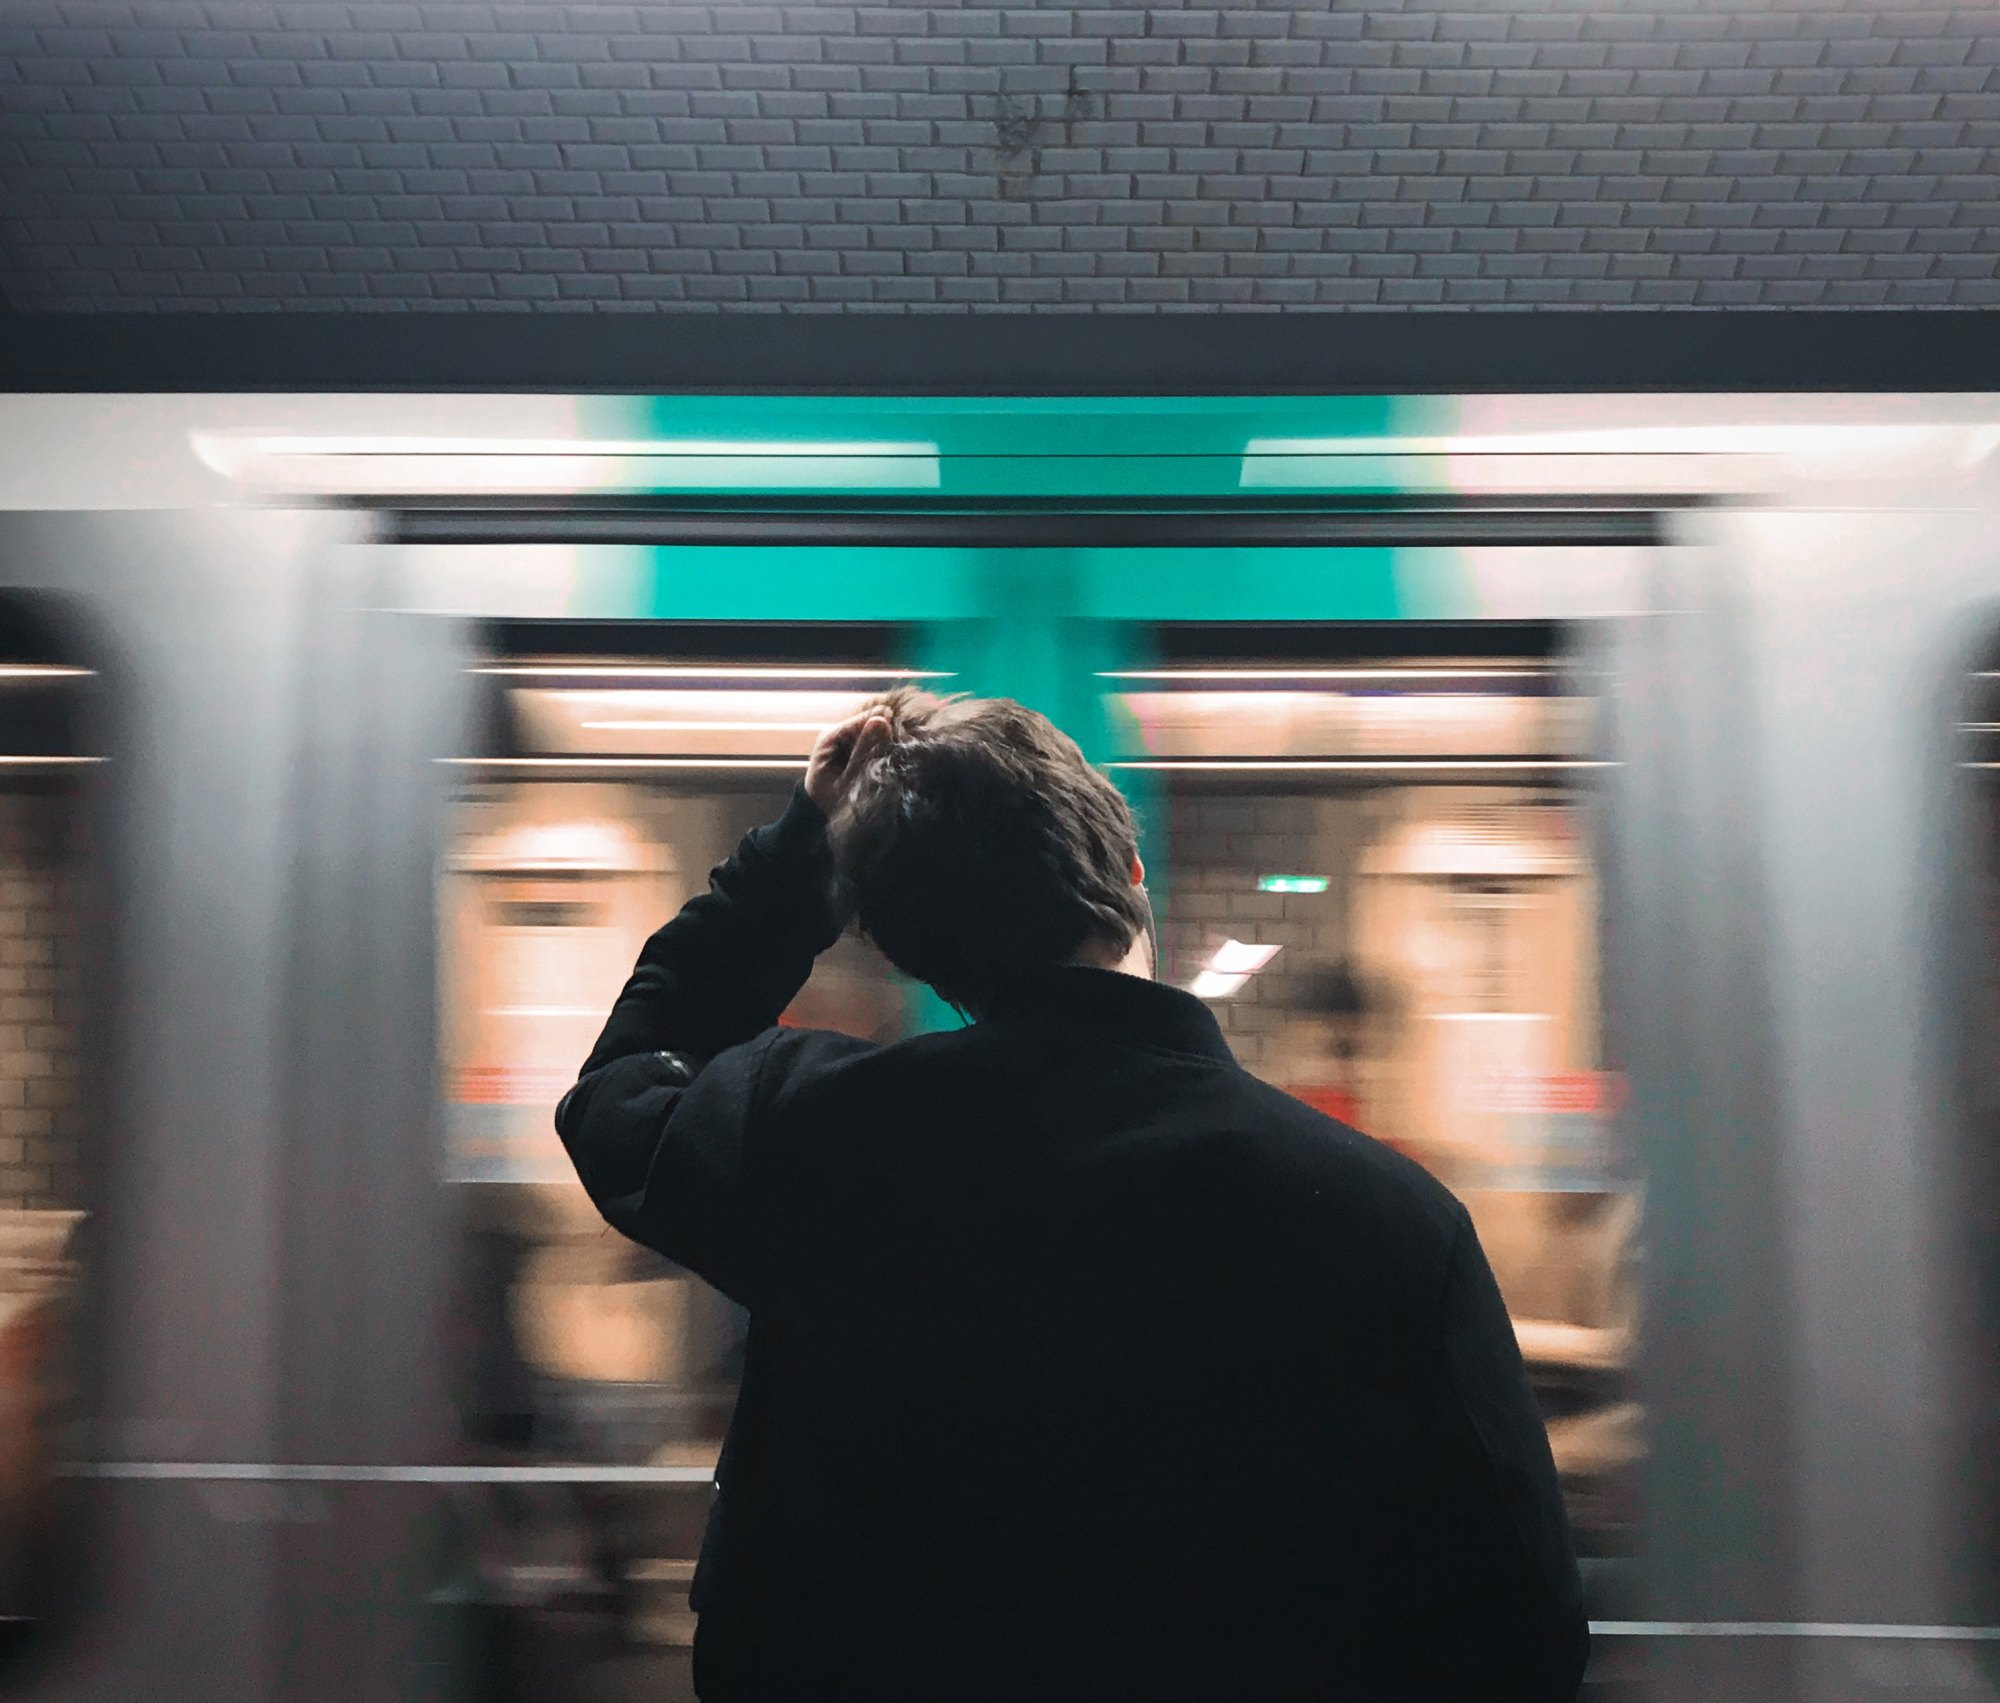 A young person waiting for the train